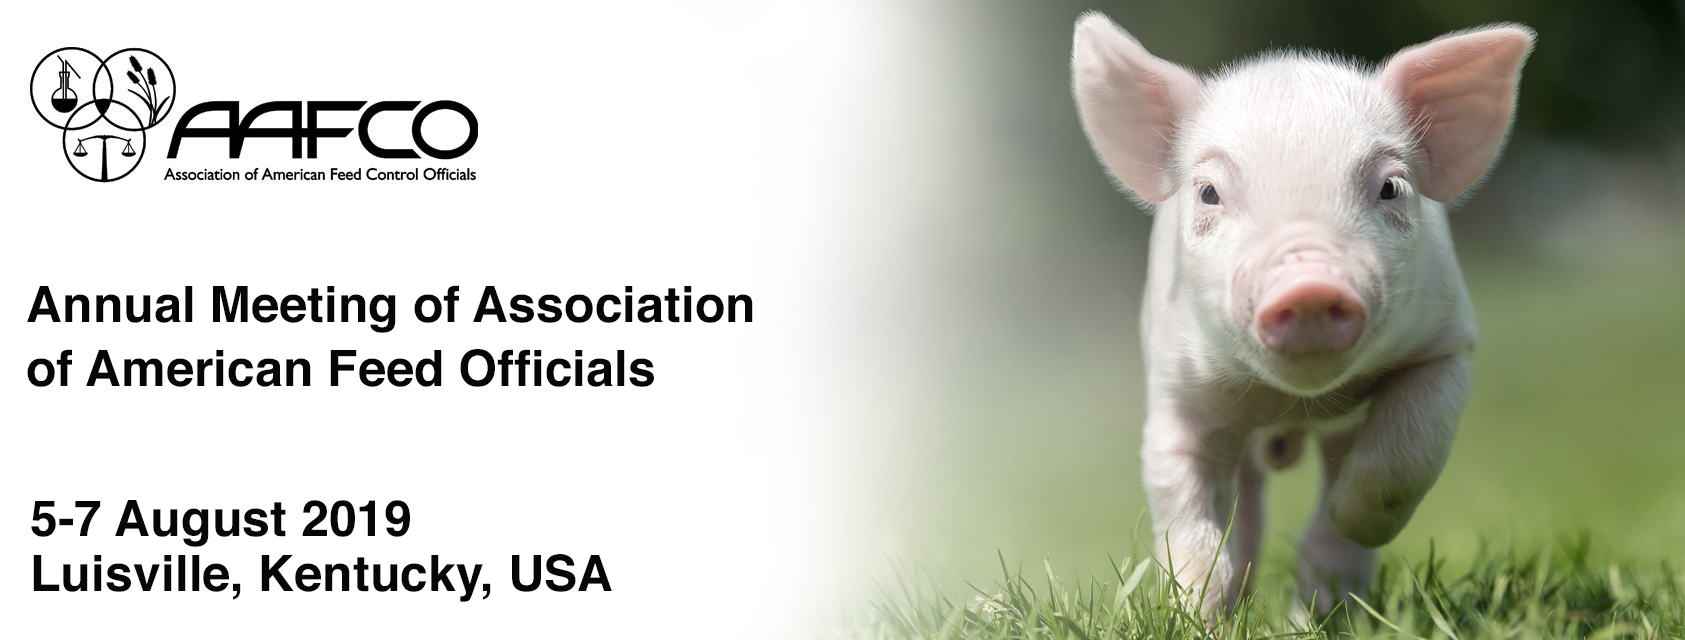 Meet us at the Annual Meeting of Association of American Feed Officials